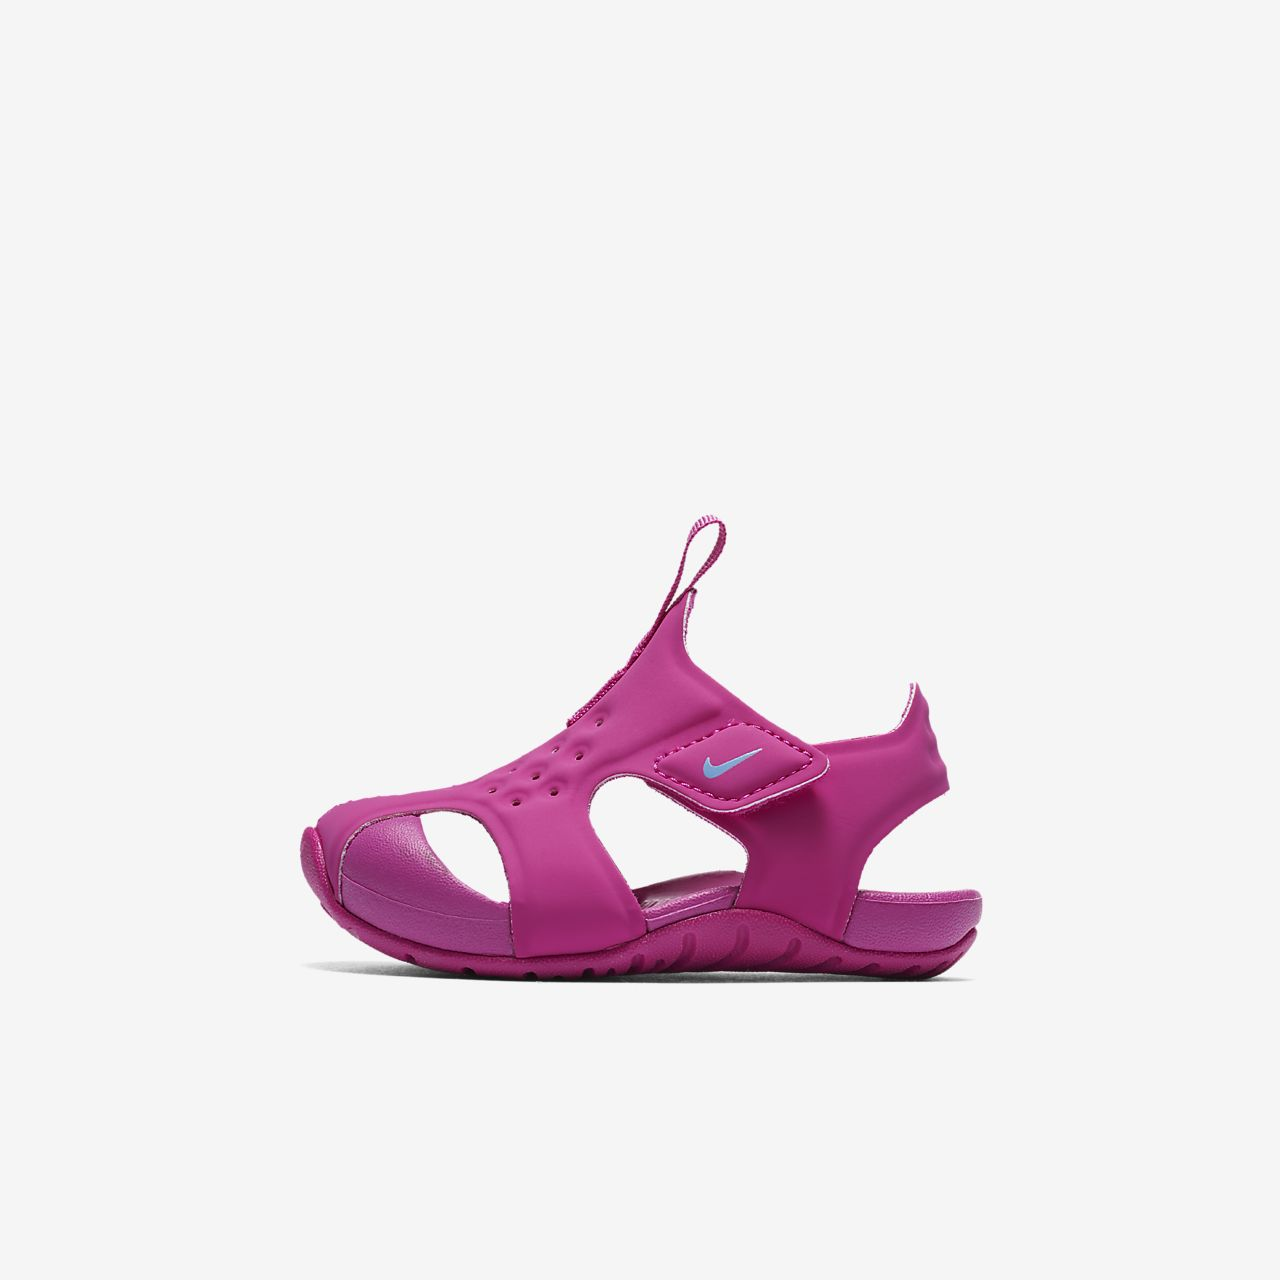 5cca107eb64 Baby   Toddler shoe. Nike Sunray Protect 2